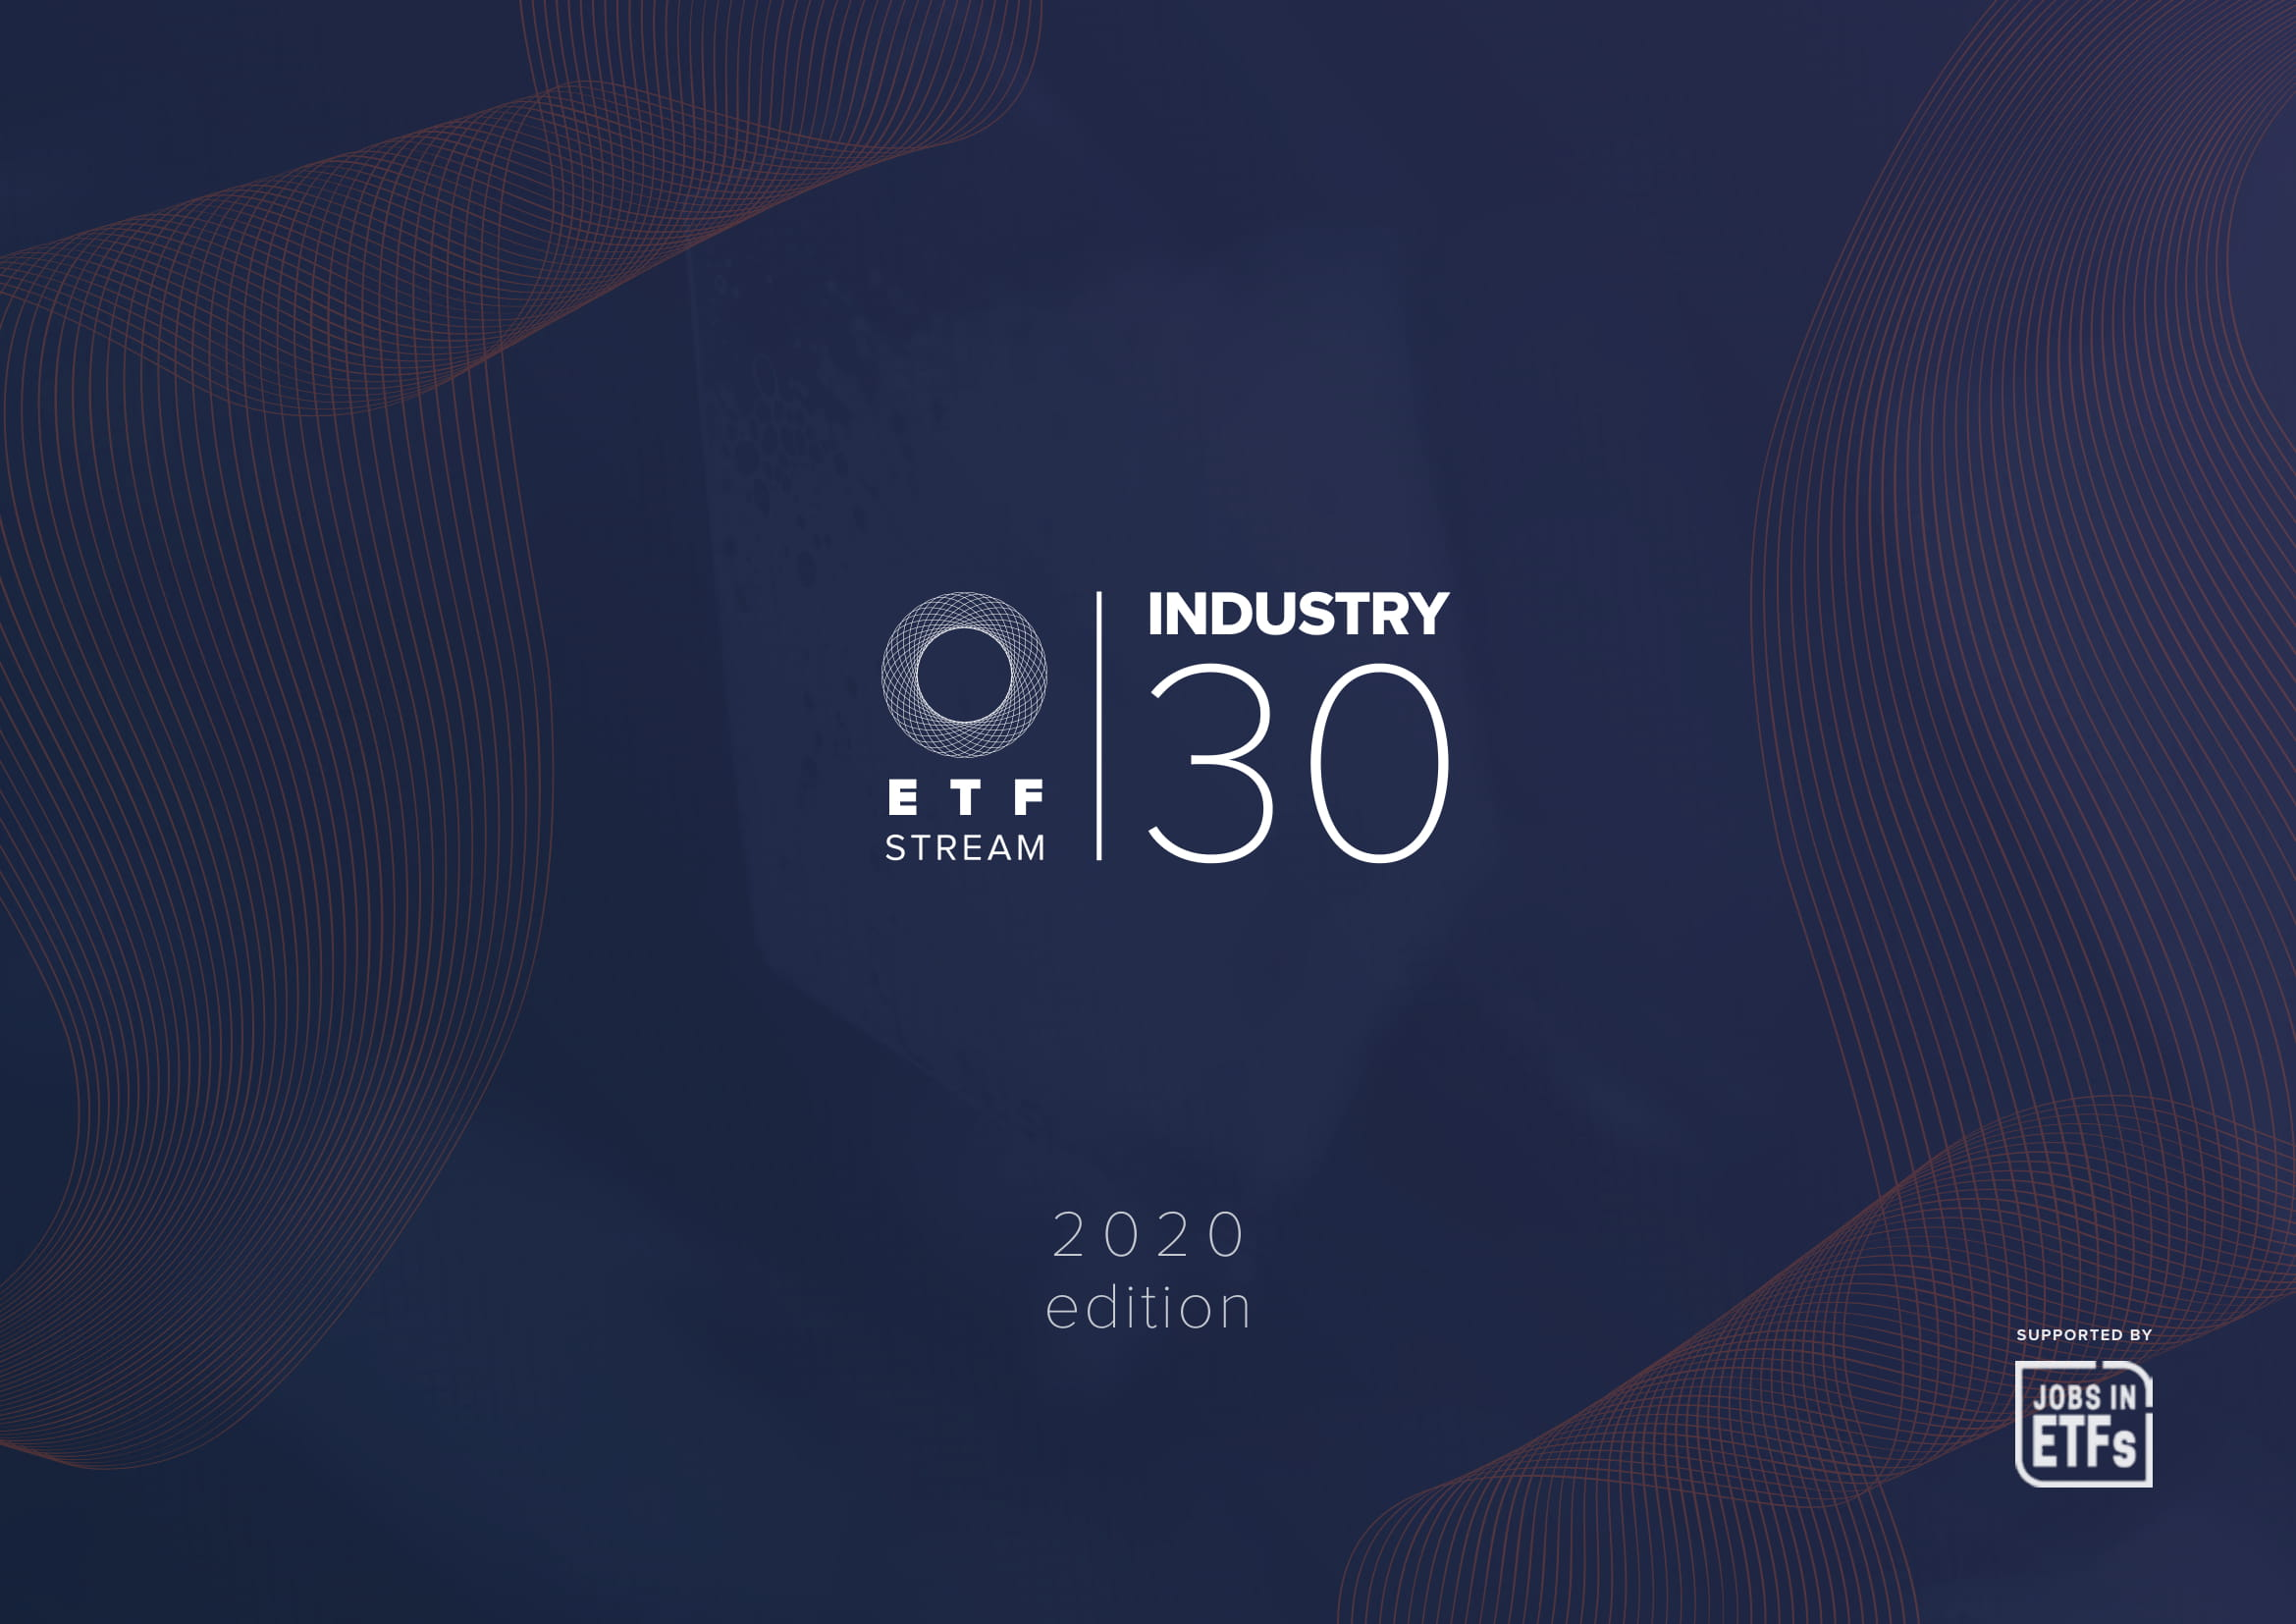 ETF Stream Industry 30